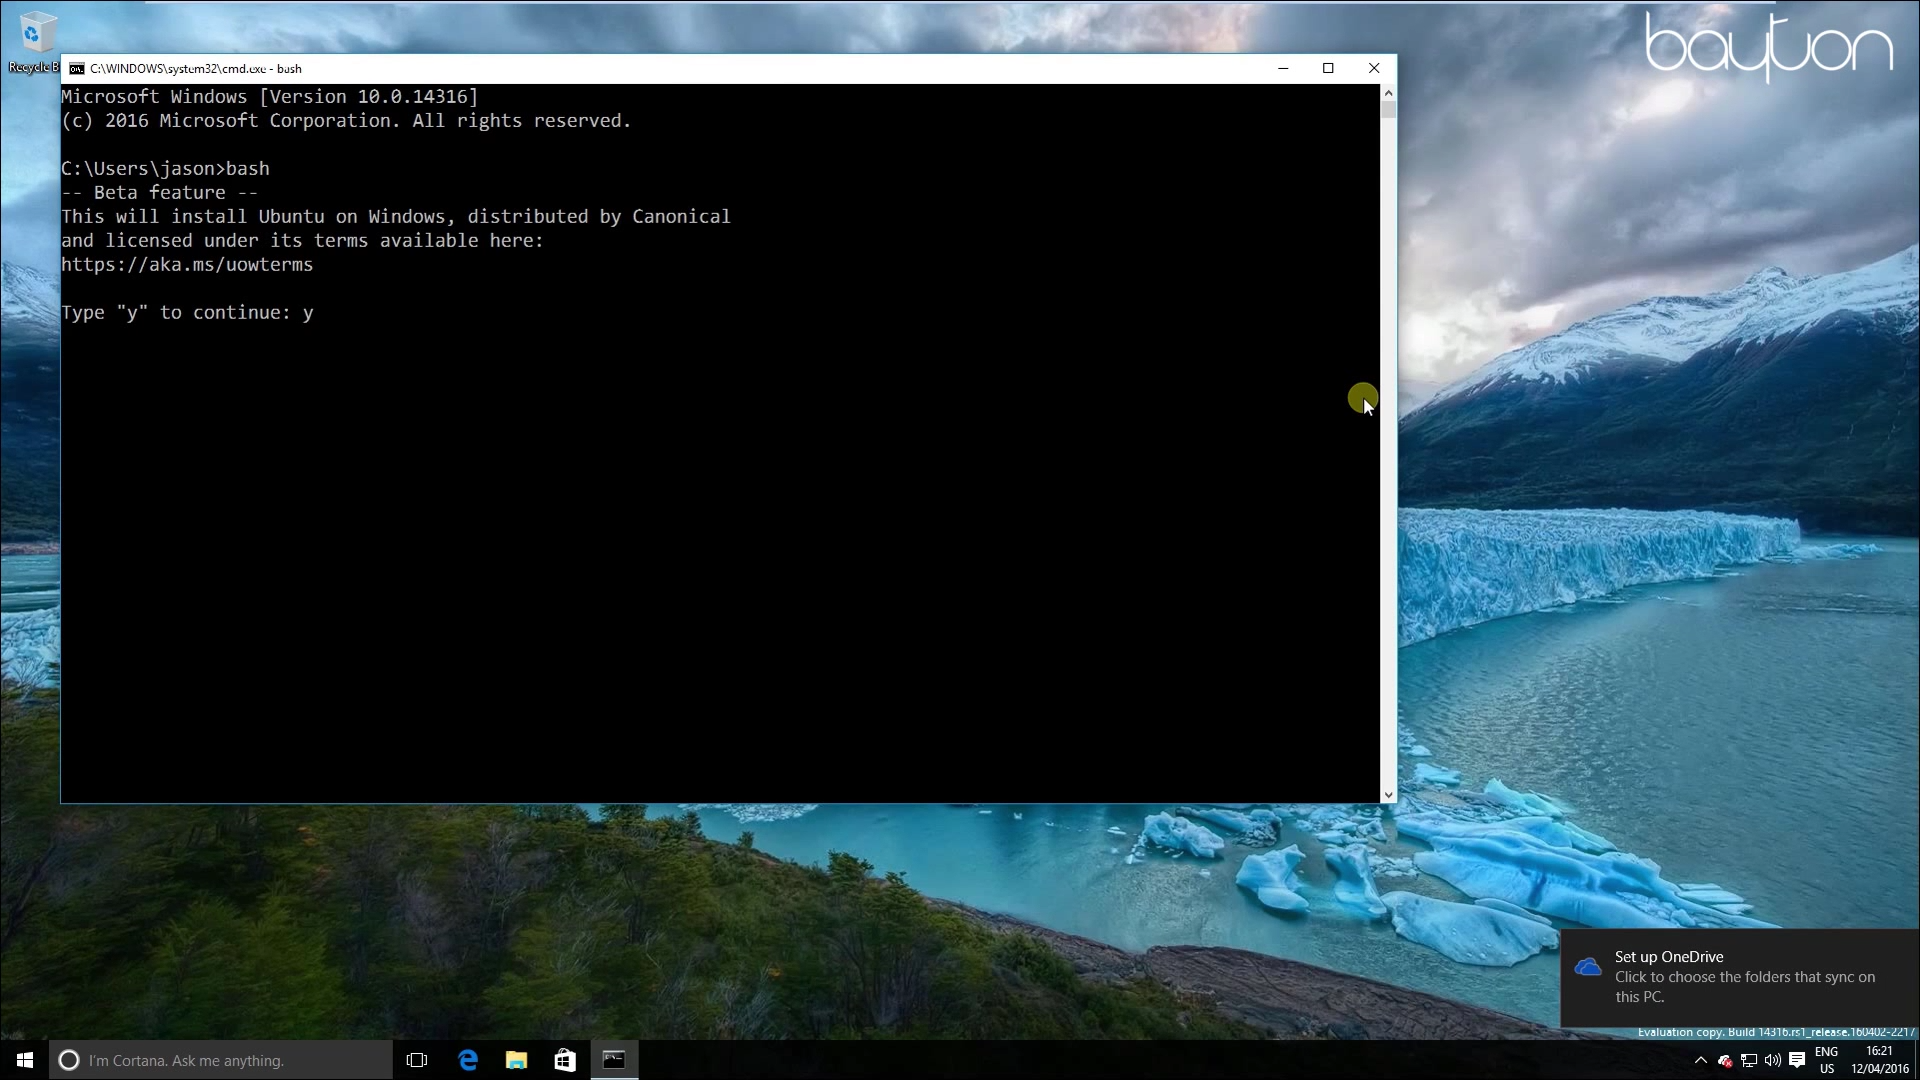 Install Bash on Windows 10 (build 14316+) | Jason Bayton